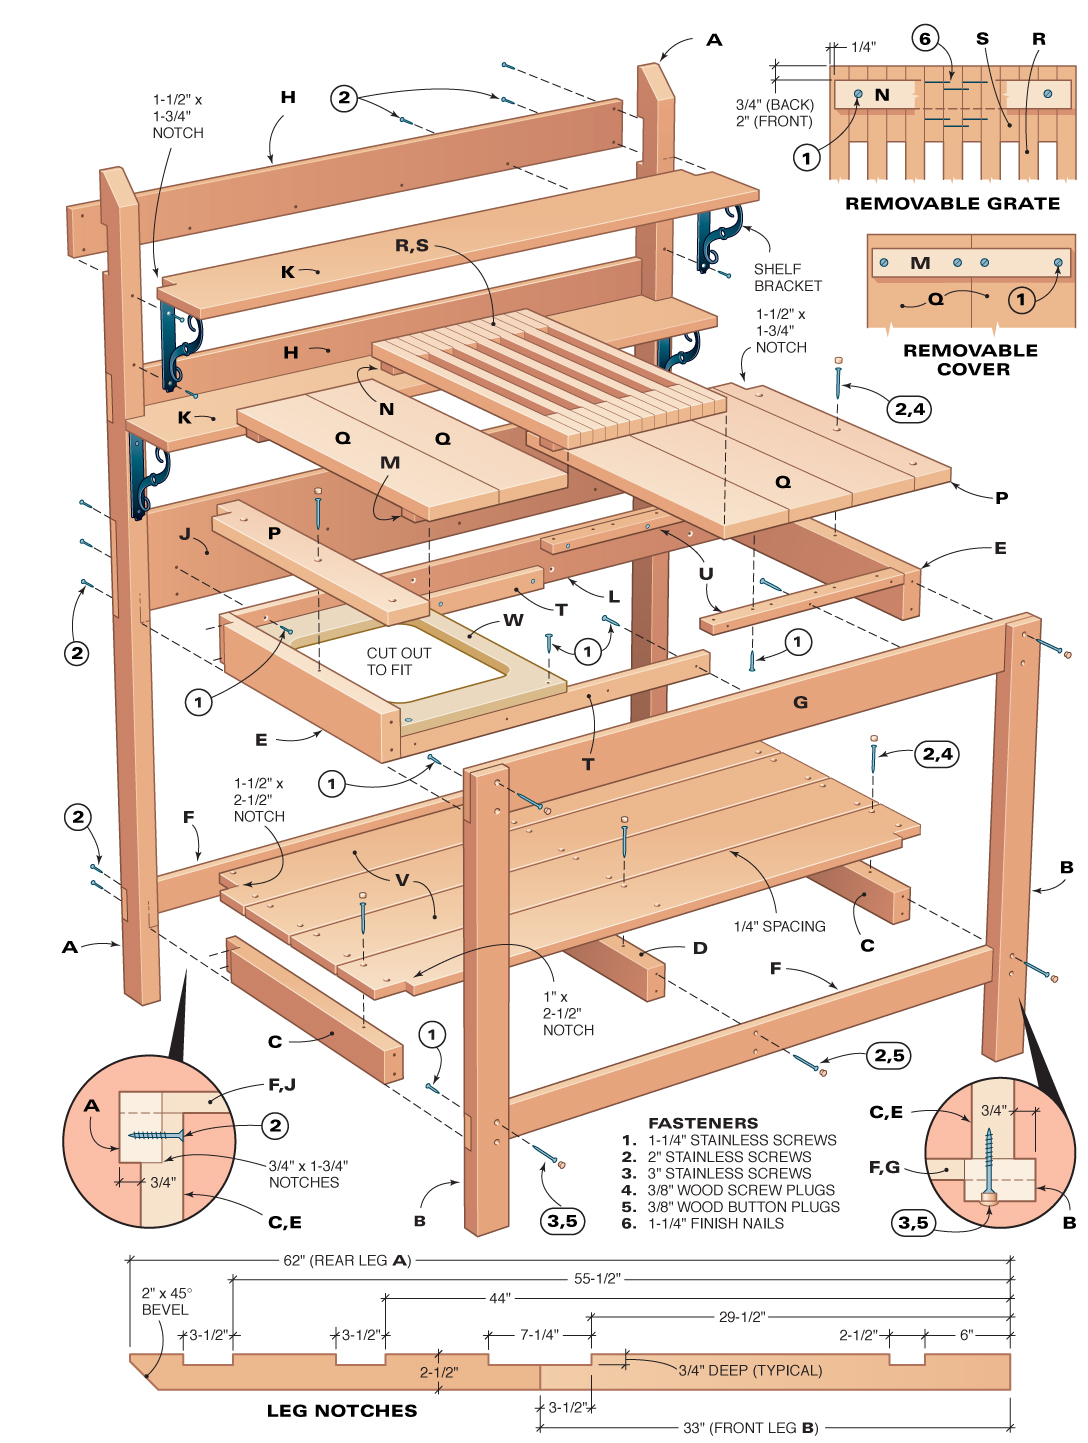 Woodworking plans and simple project ideas wood free for Garden potting bench designs